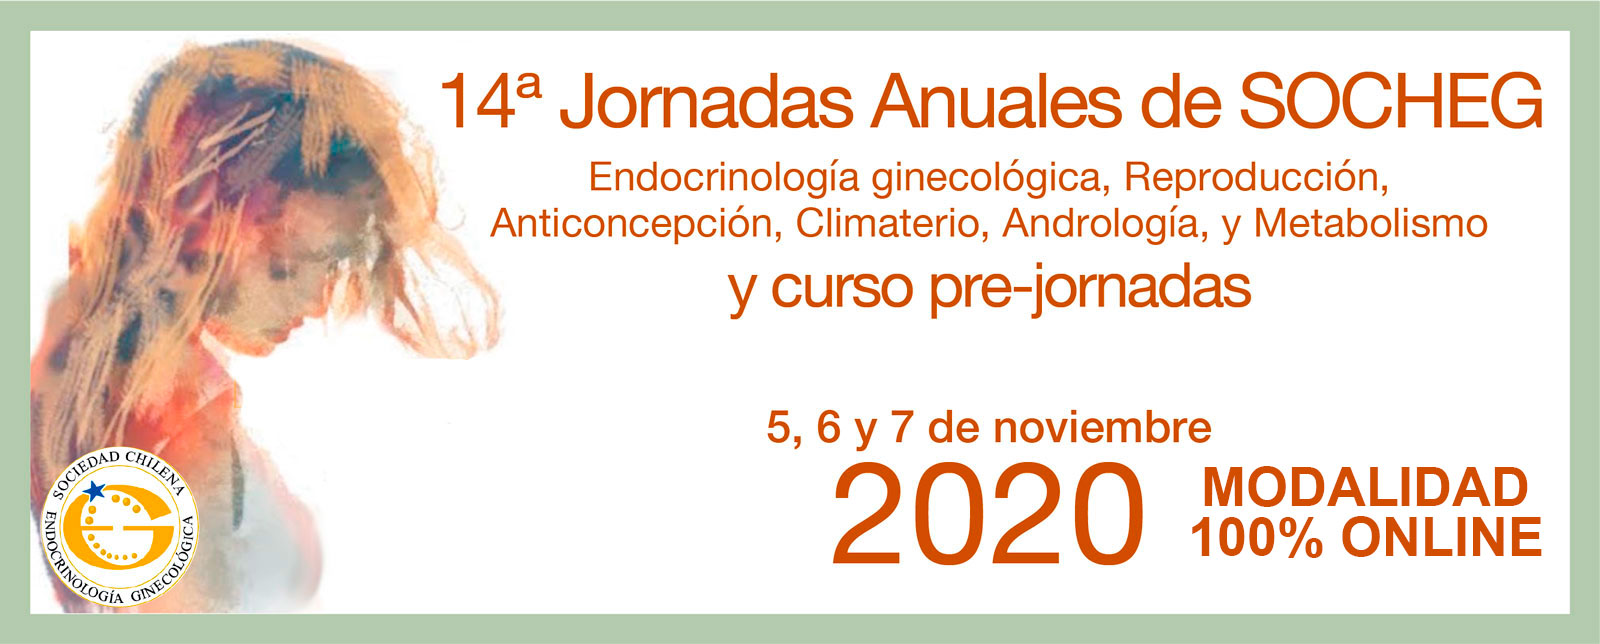 14as Jornadas Anuales Socheg